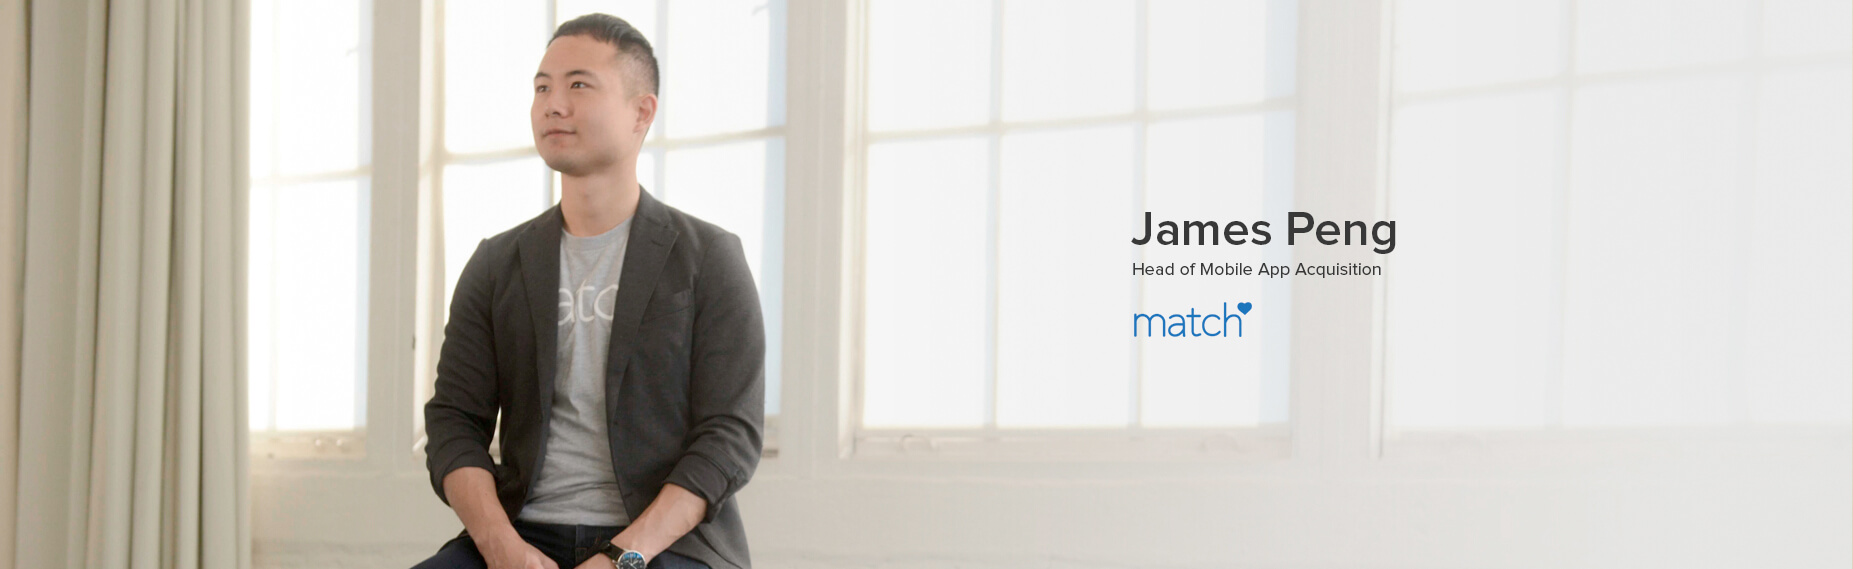 James Peng, Head of Mobile App Acquisition at Match